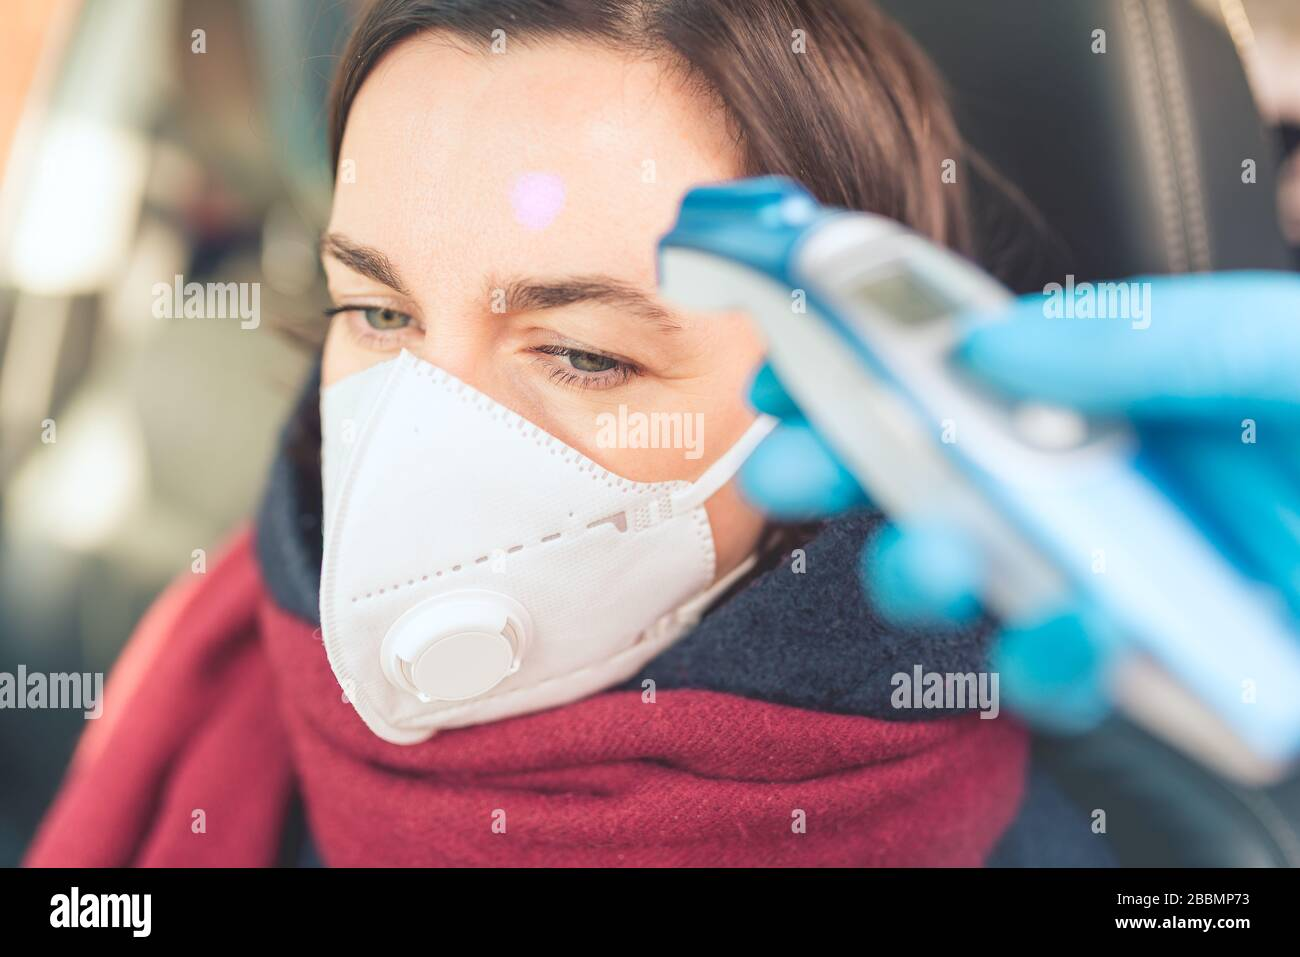 Temperature check point - the woman behind the wheel of the car in an anti-virus mask is subjected to temperature measurement. Coronavirus concept - r Stock Photo